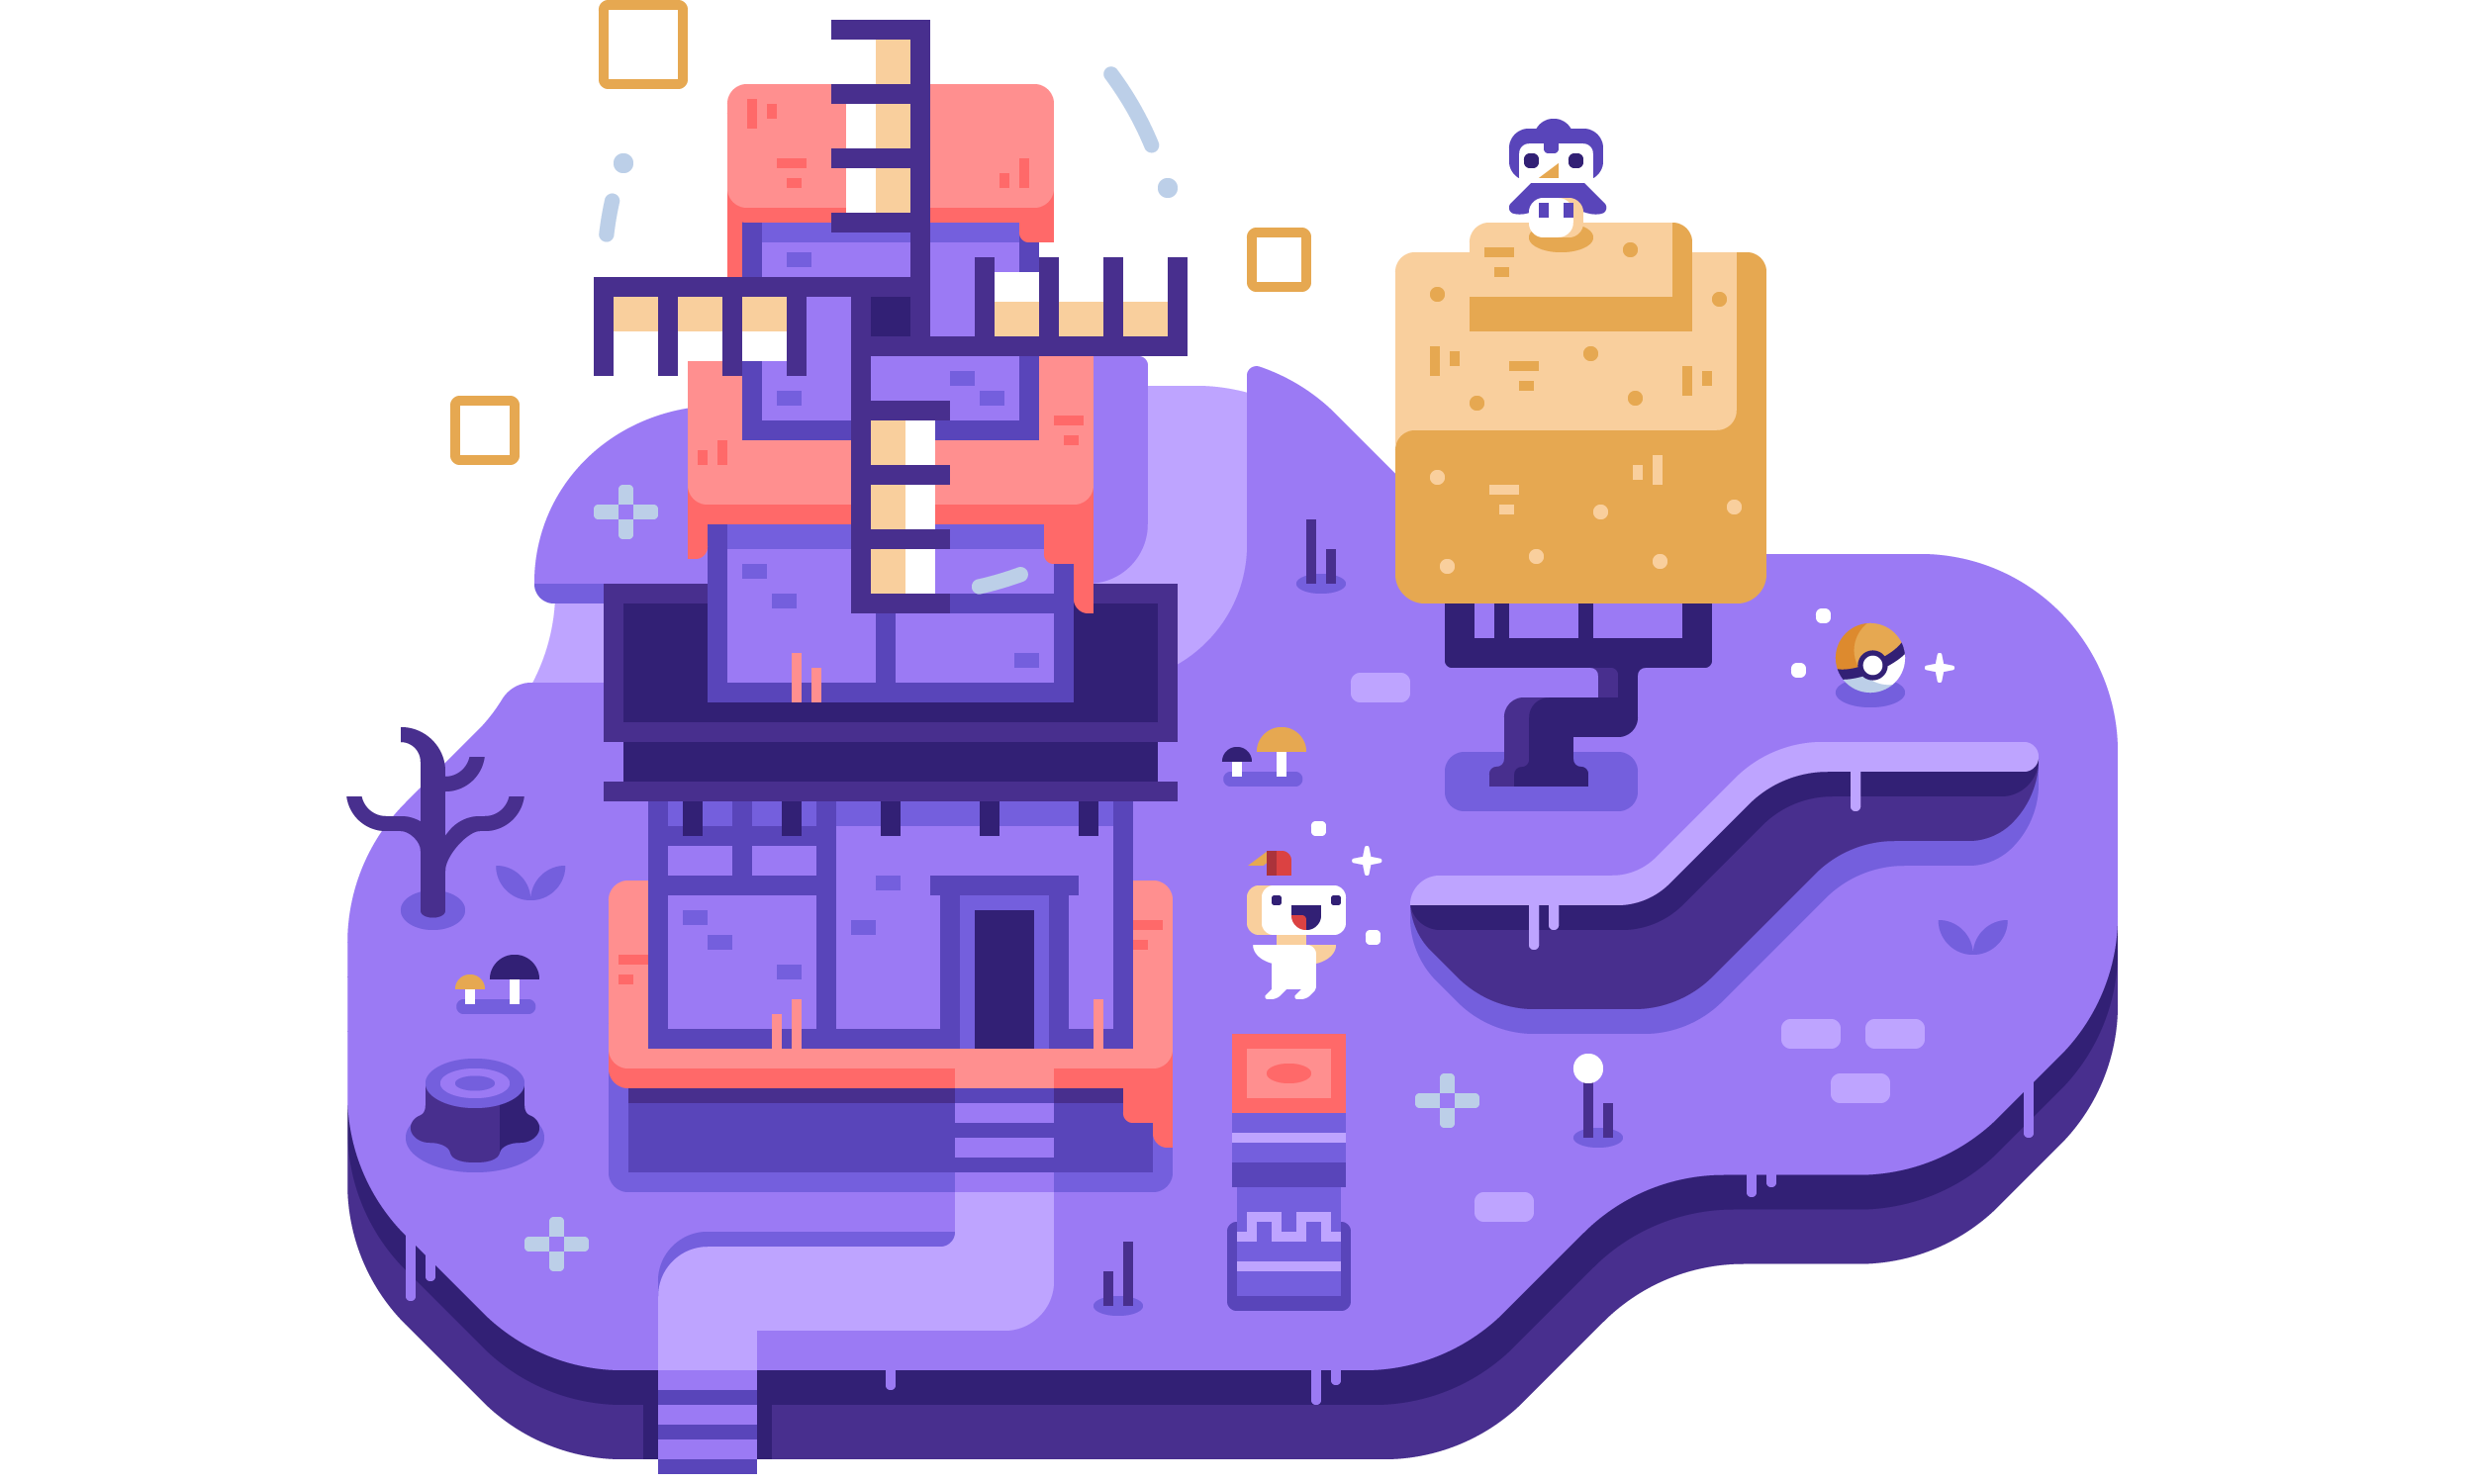 Fez Discord Dioramas illustrations by Matt Anderson and Canopy Design and Illustration